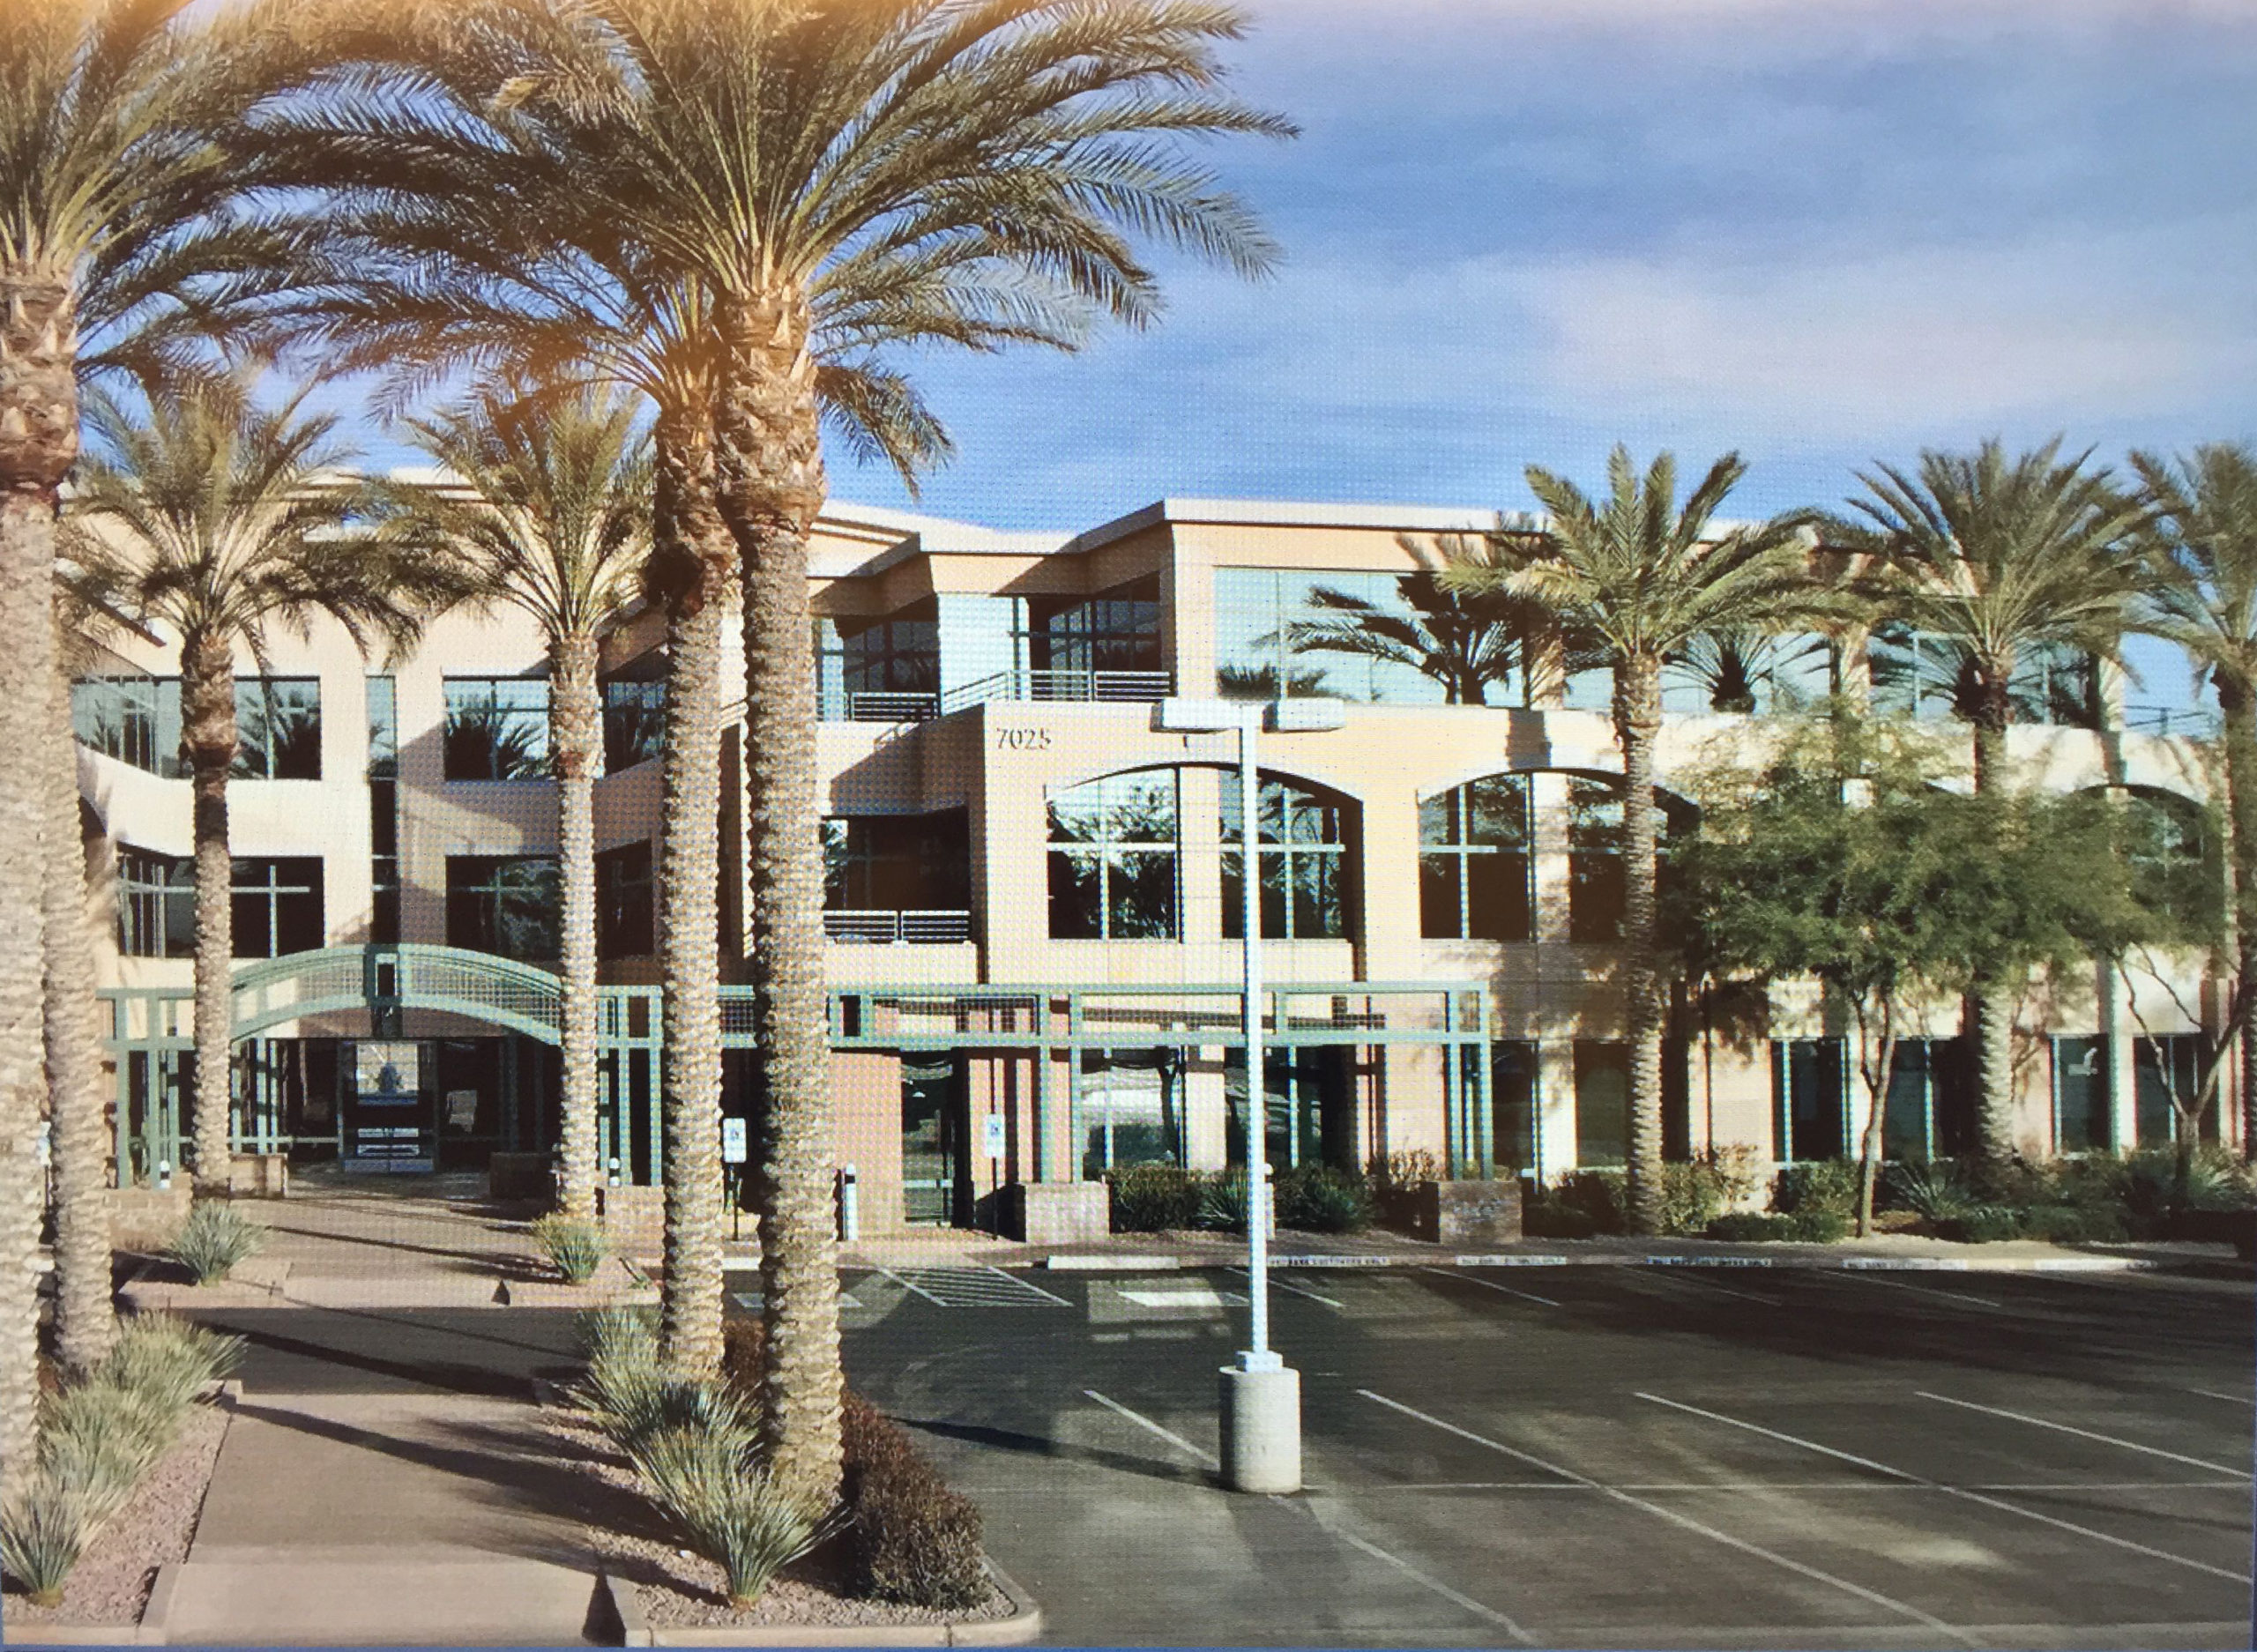 Picture of The Meltzer Clinic PC Scottsdale, AZ